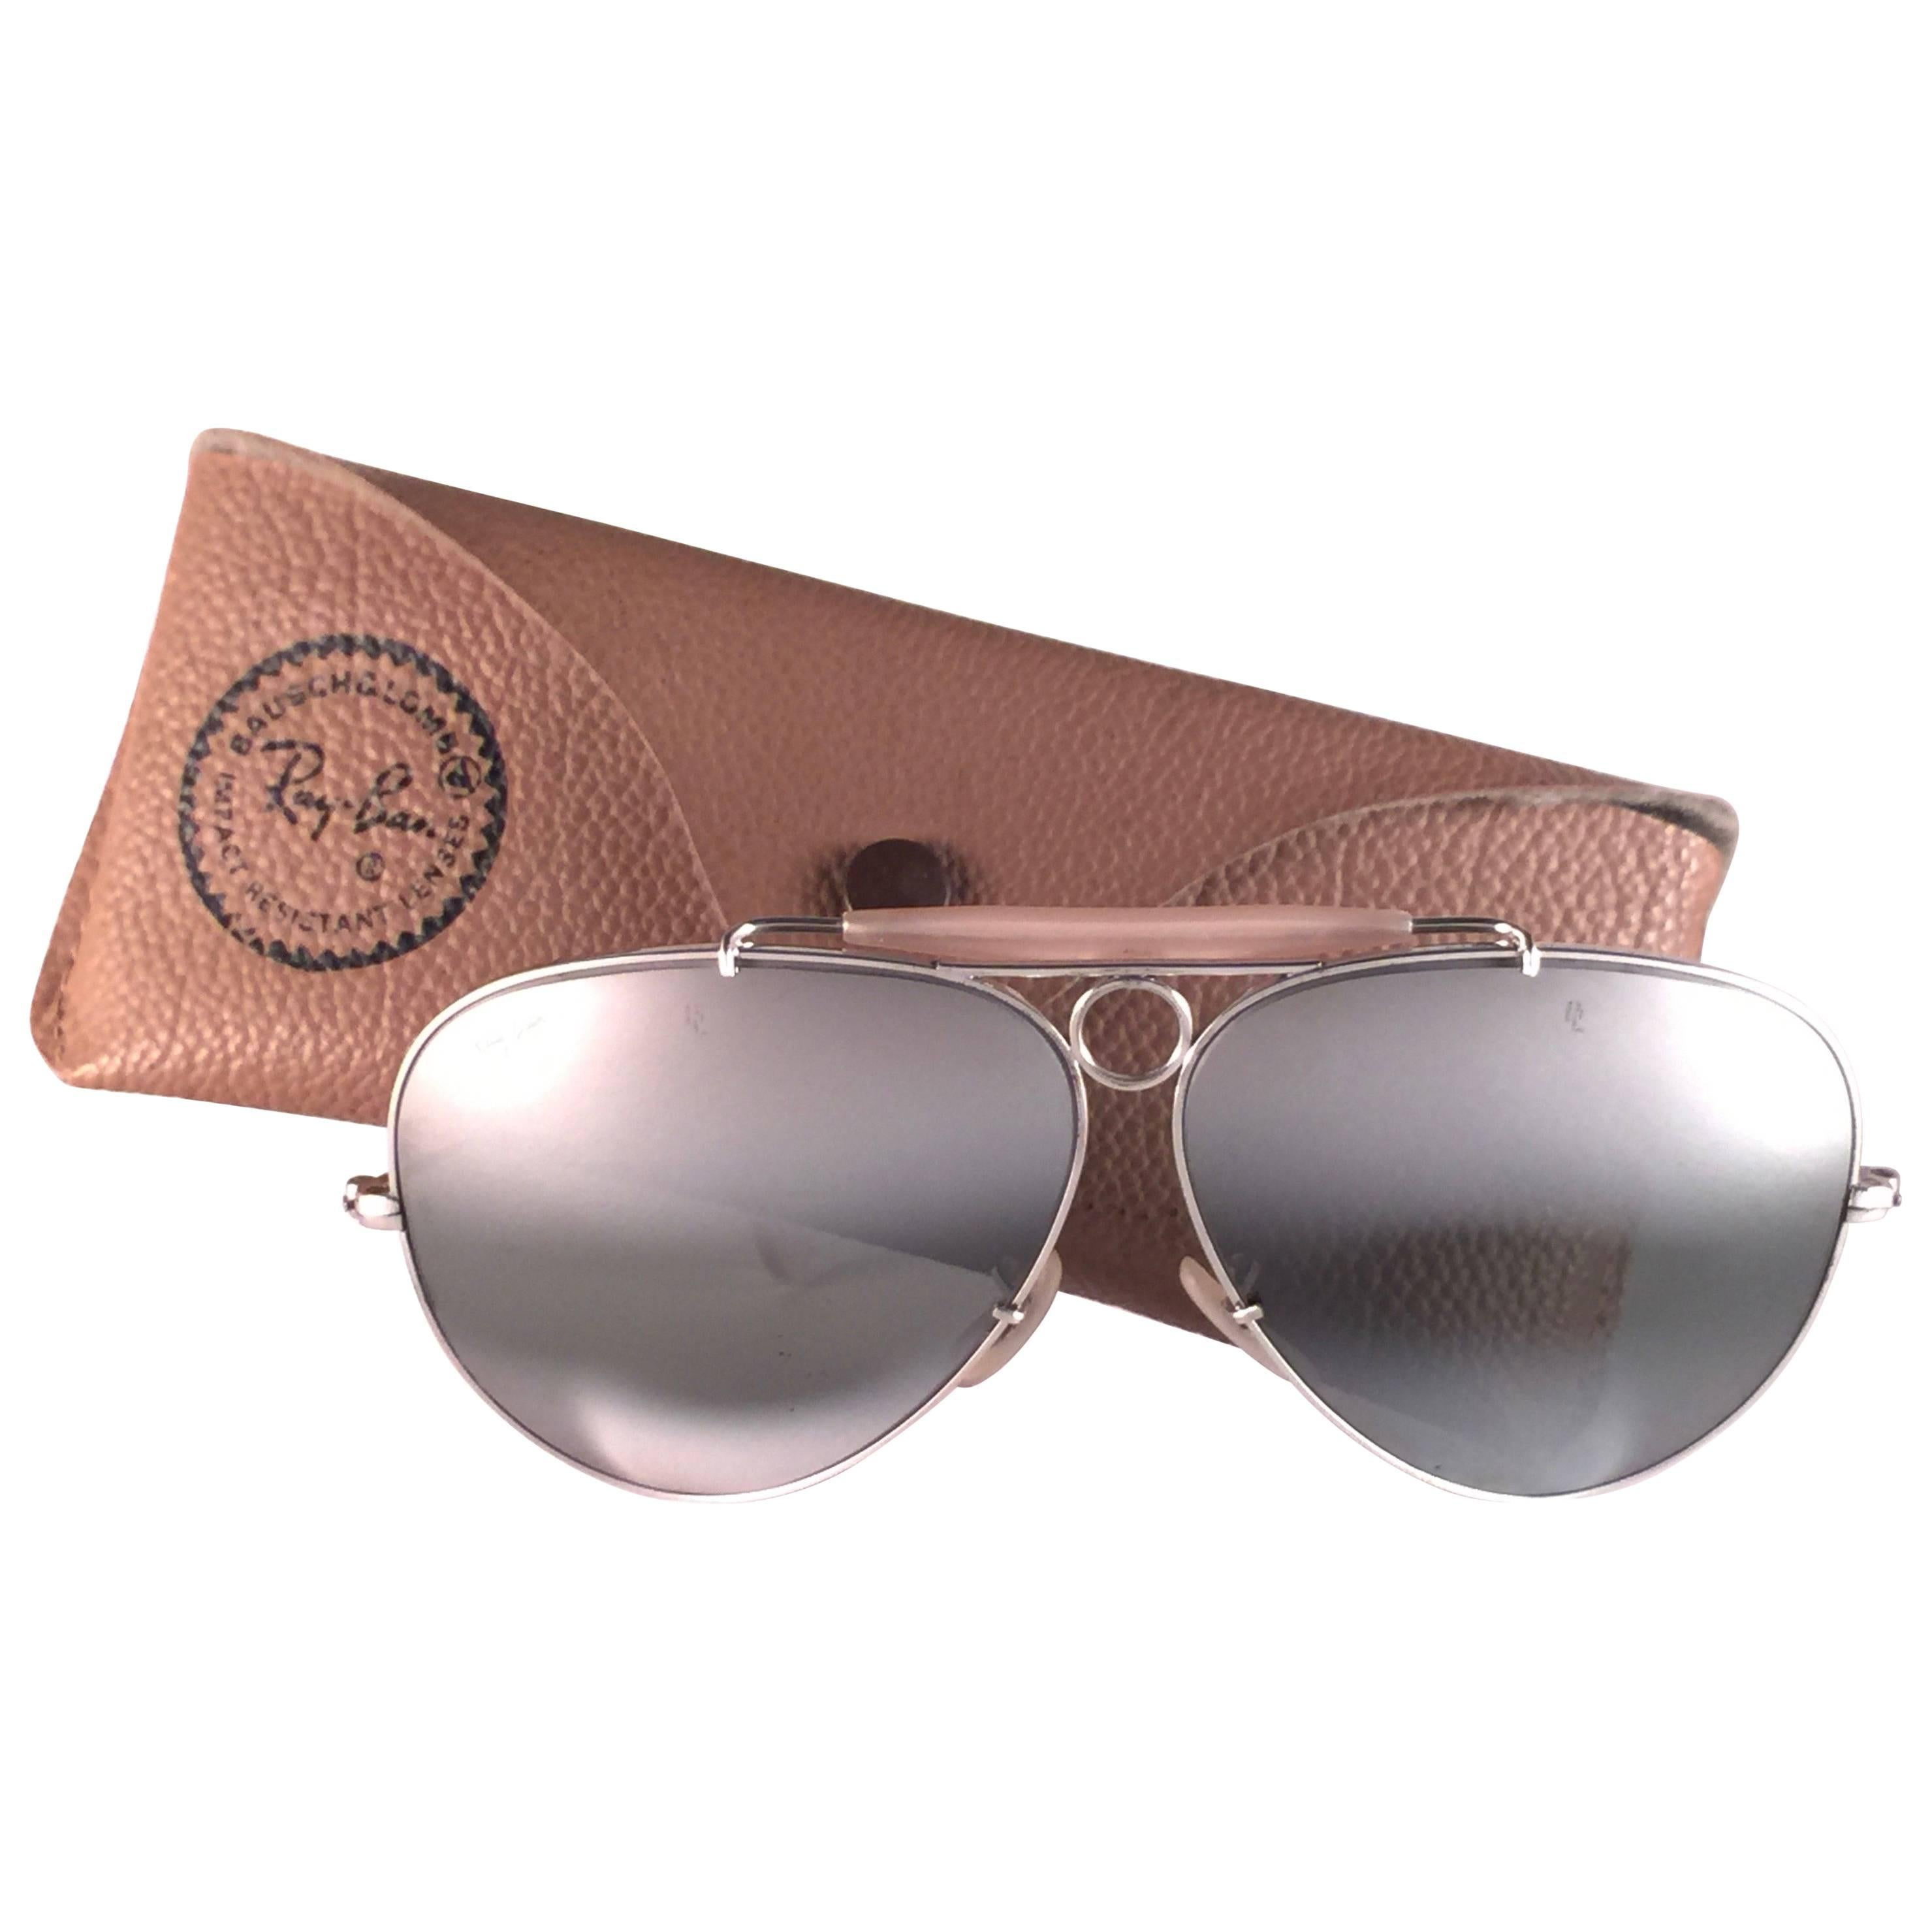 8465a158e4 ... where can i buy ray ban shooter vintage white gold 62mm double mirror  bl sunglasses 1980s